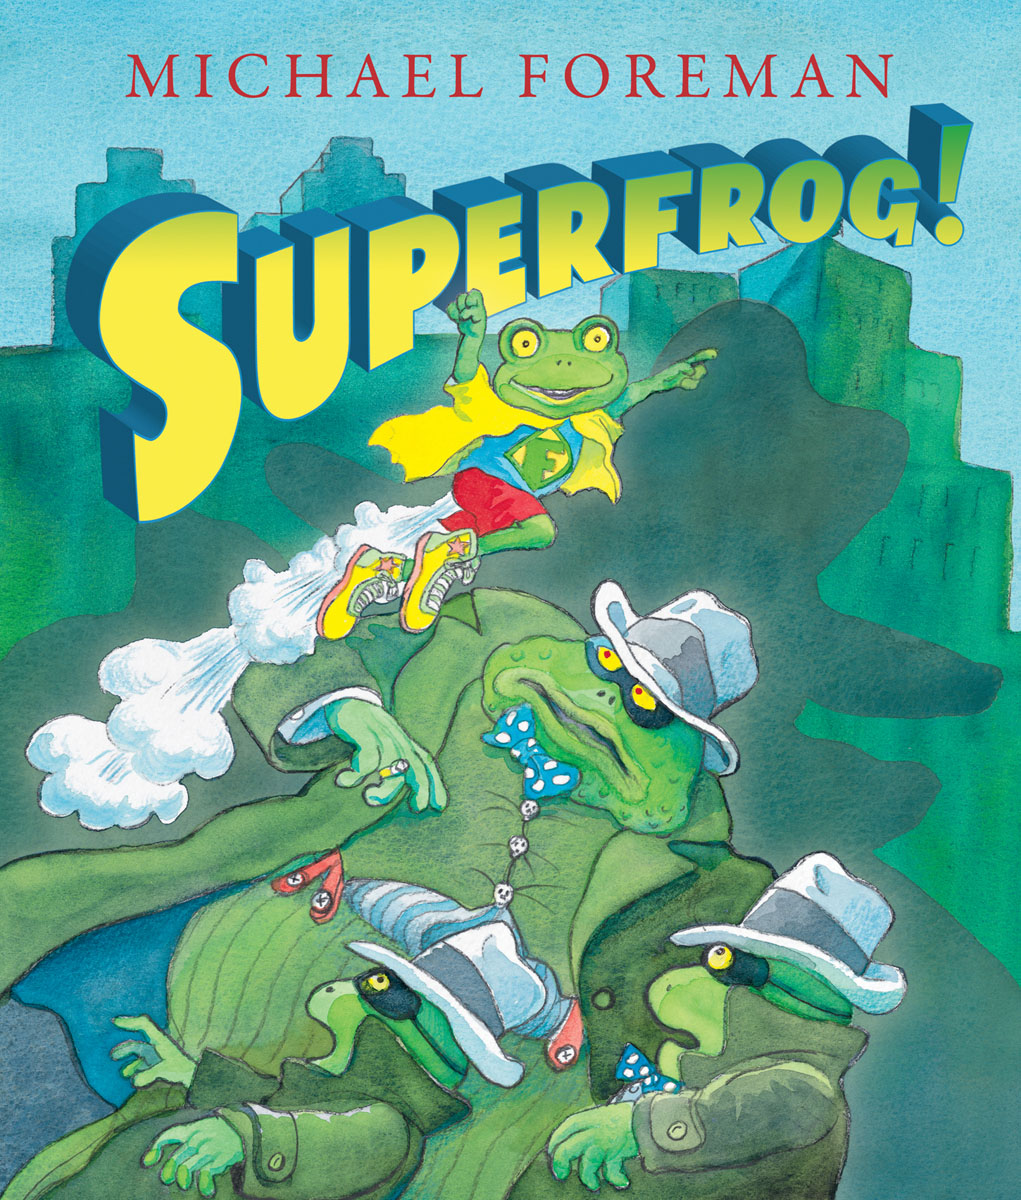 Superfrog! monsters of folk monsters of folk monsters of folk